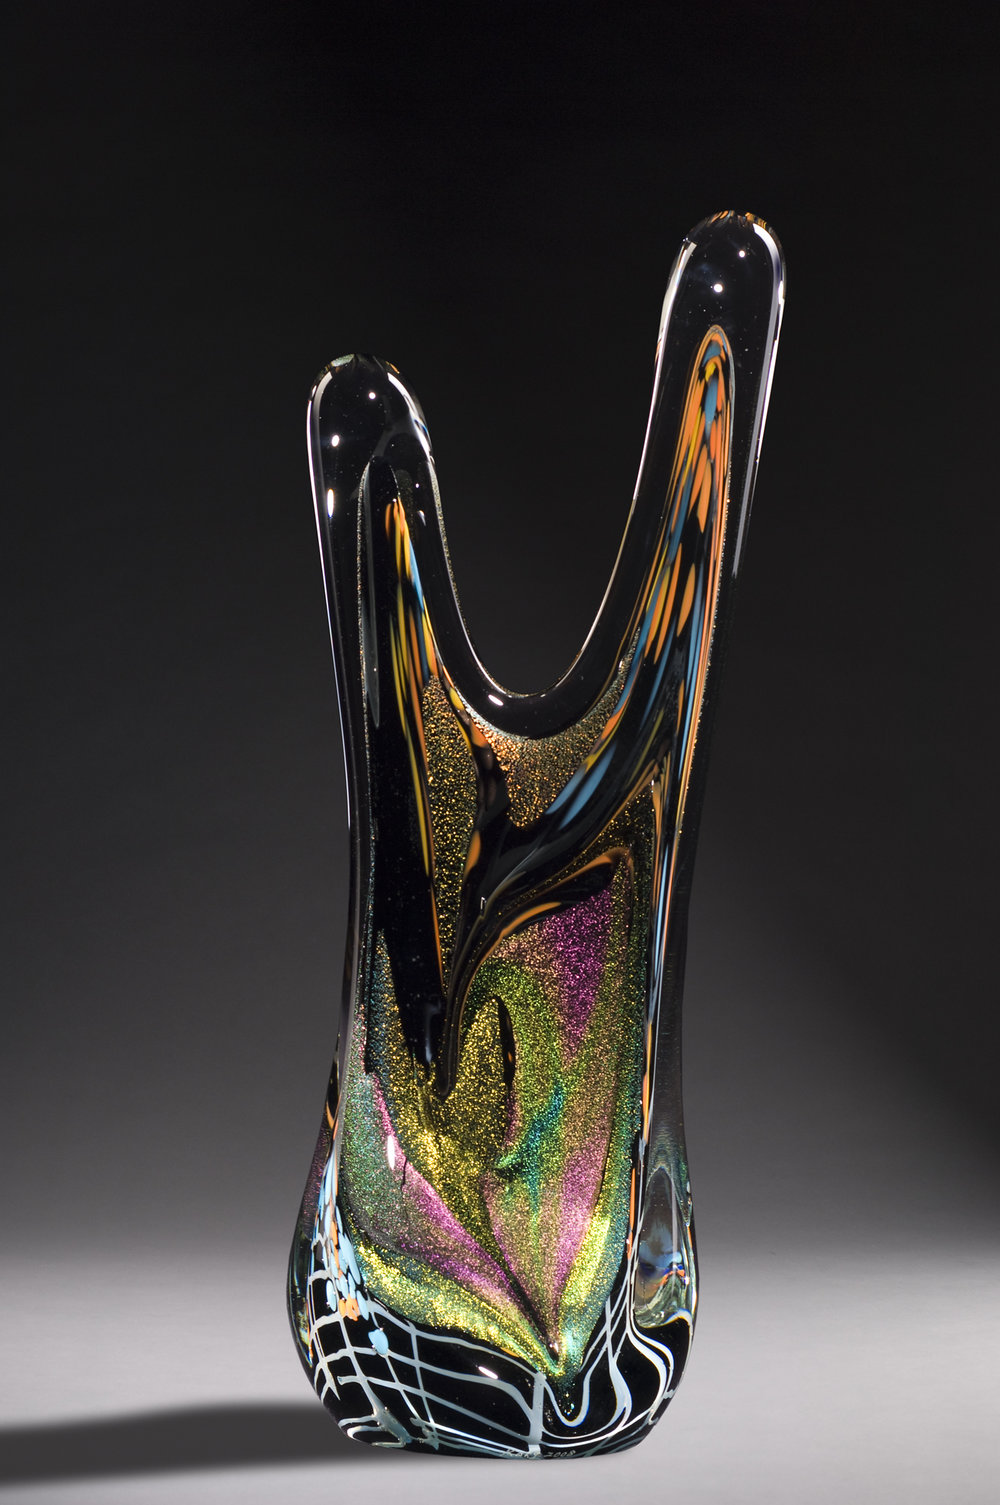 Glass by Rollin Karg